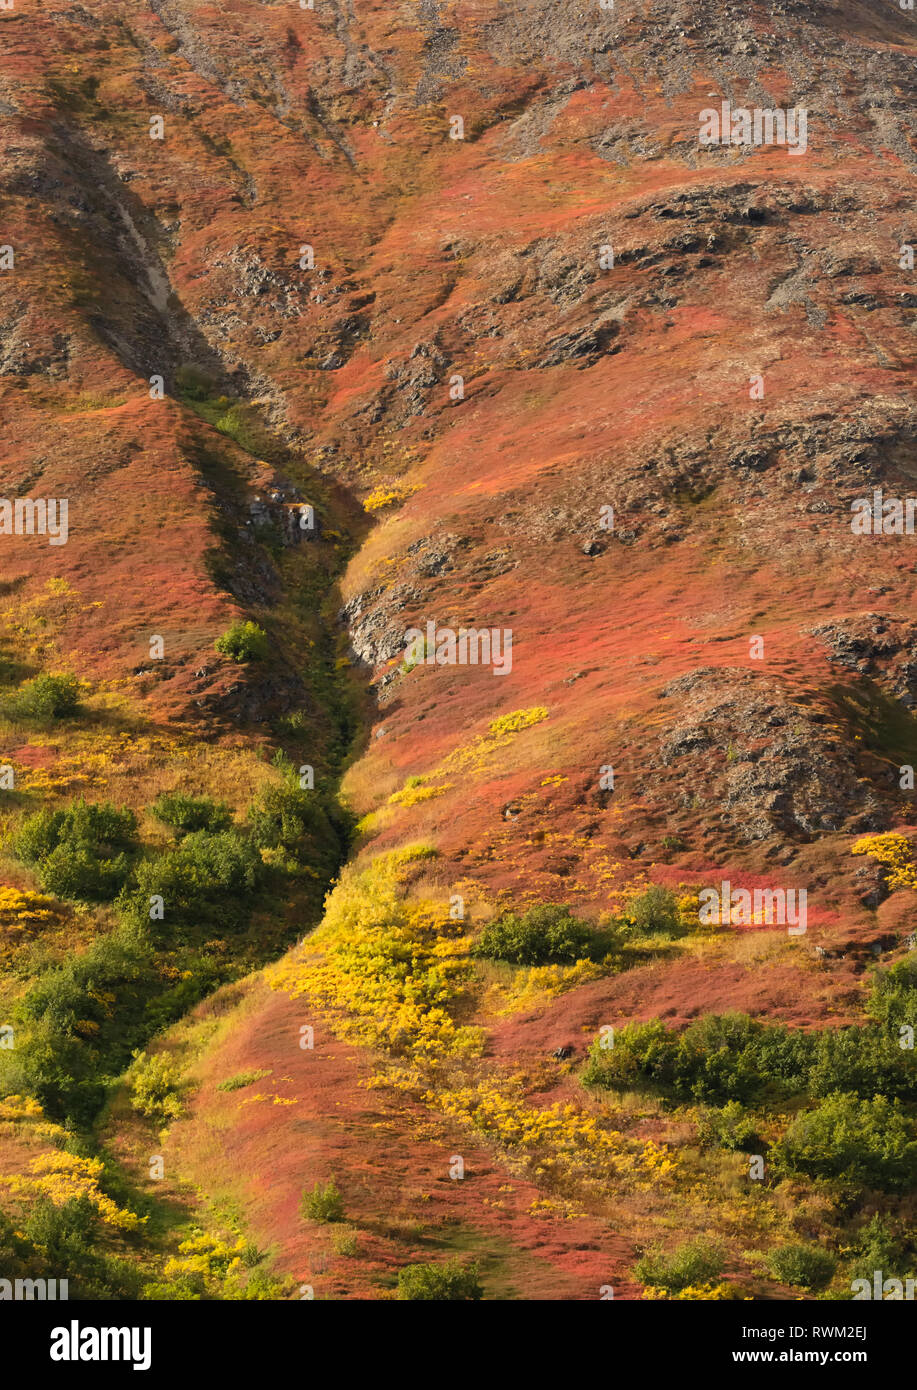 Steep gully cutting deep into rocky Alaskan hillside in fall colors - Stock Image